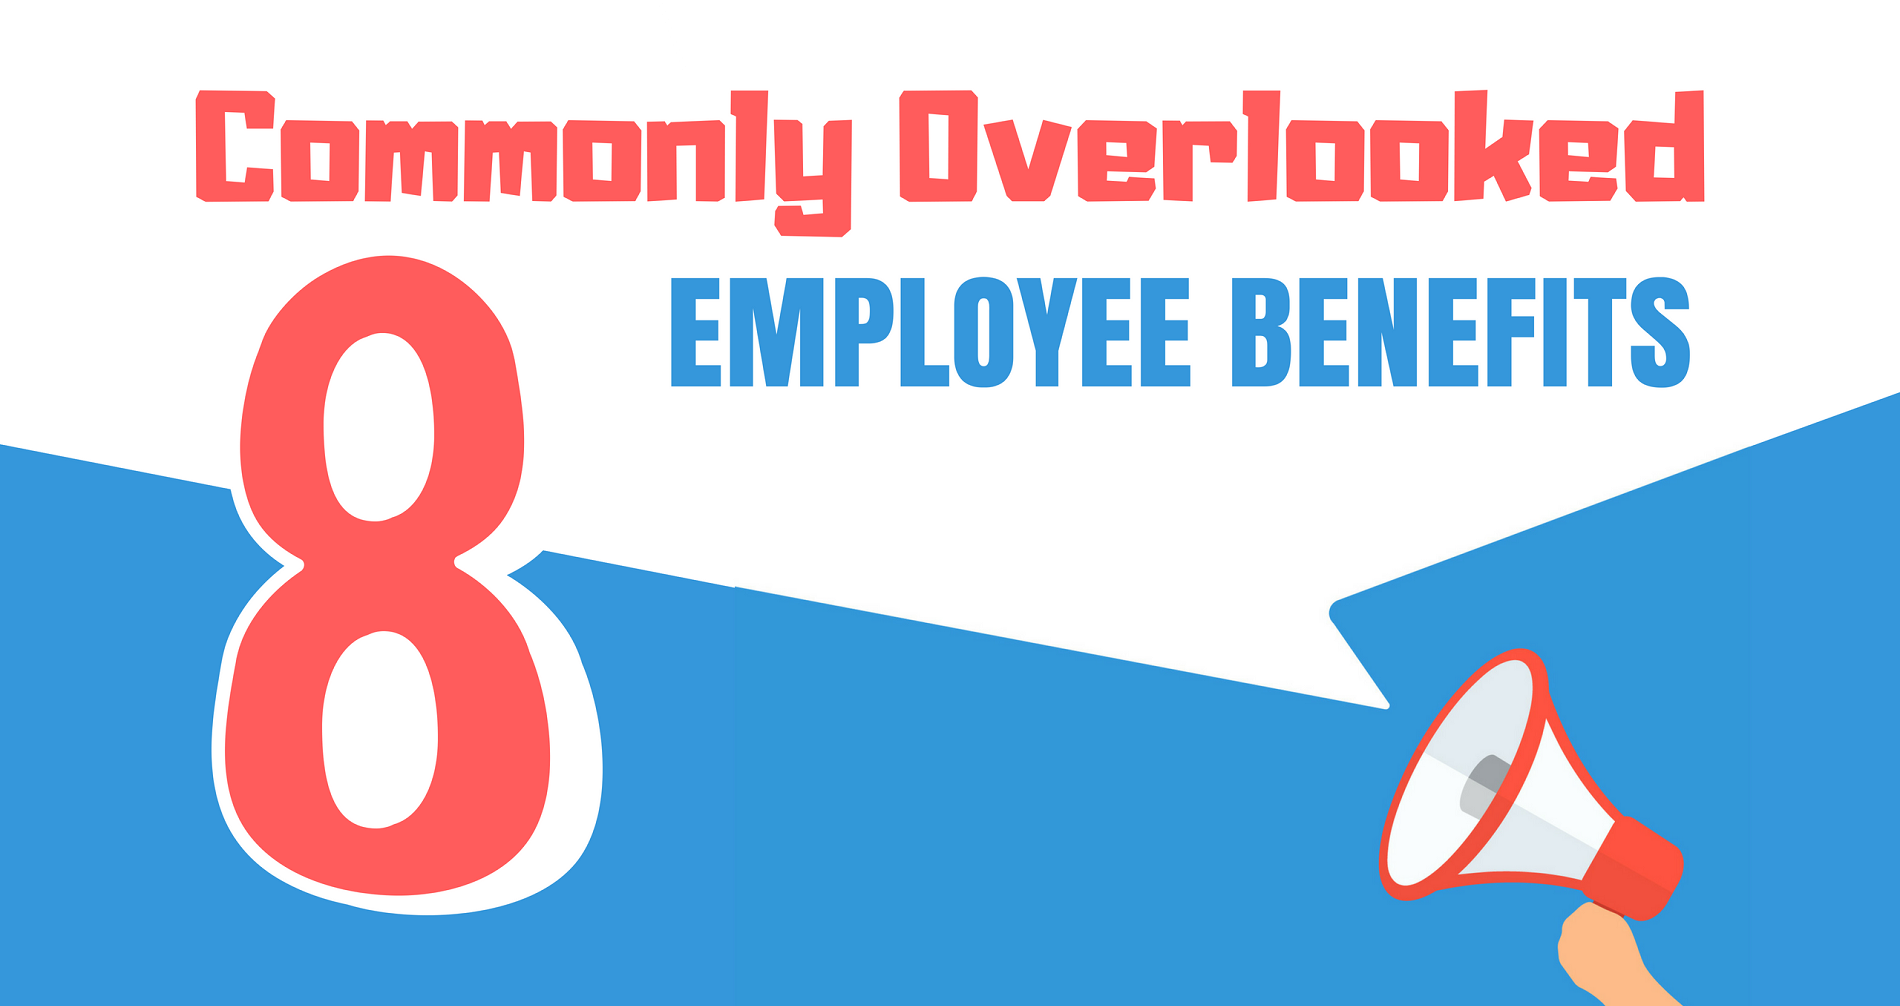 8 Commonly Overlooked Employee Benefits to retain employees by alden hui